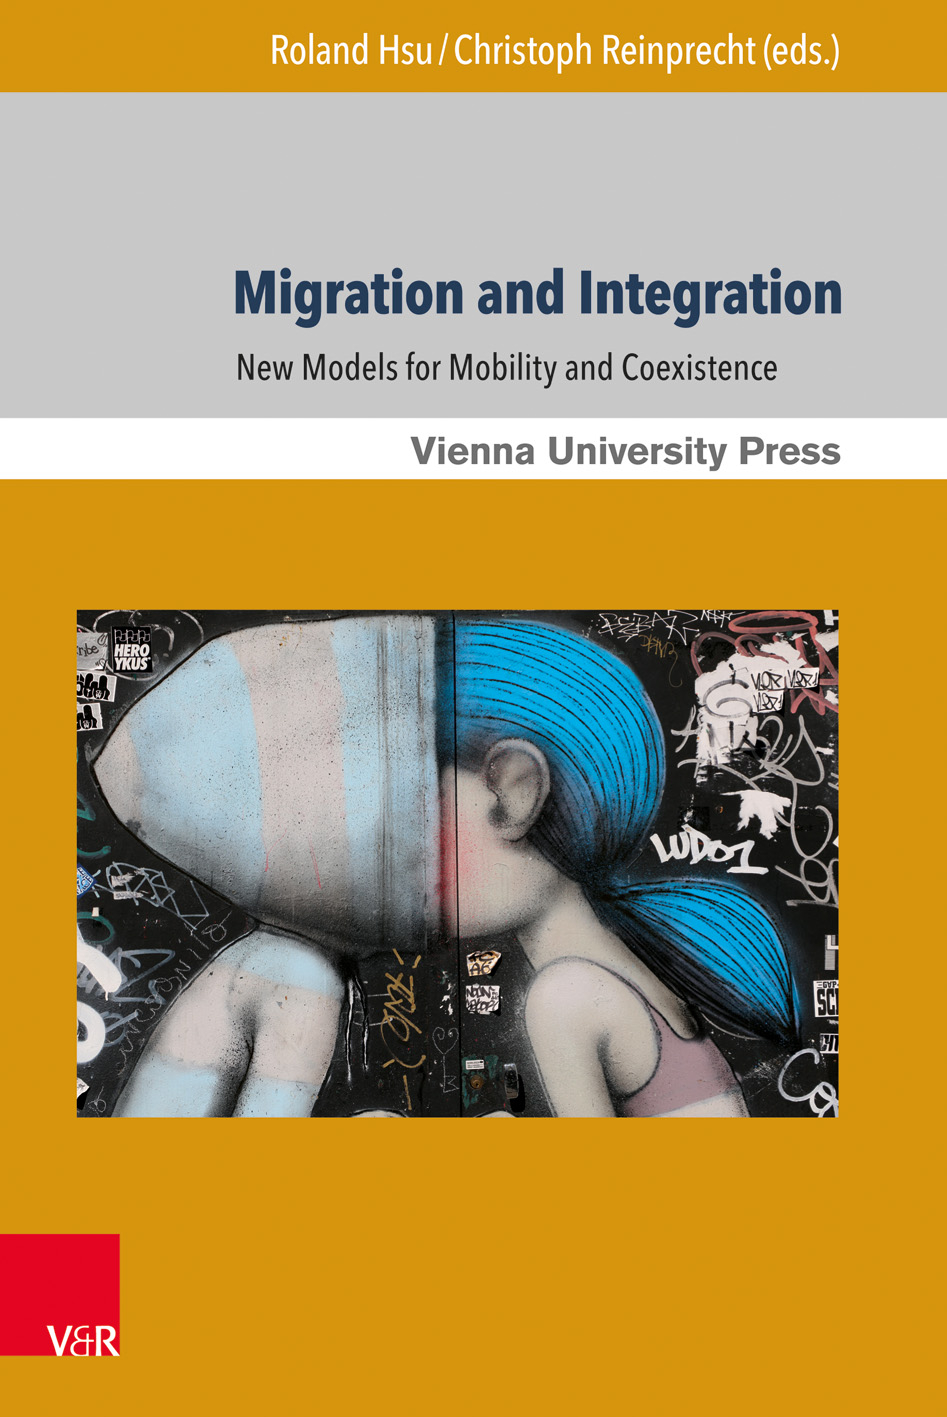 migration-and-integration-48350